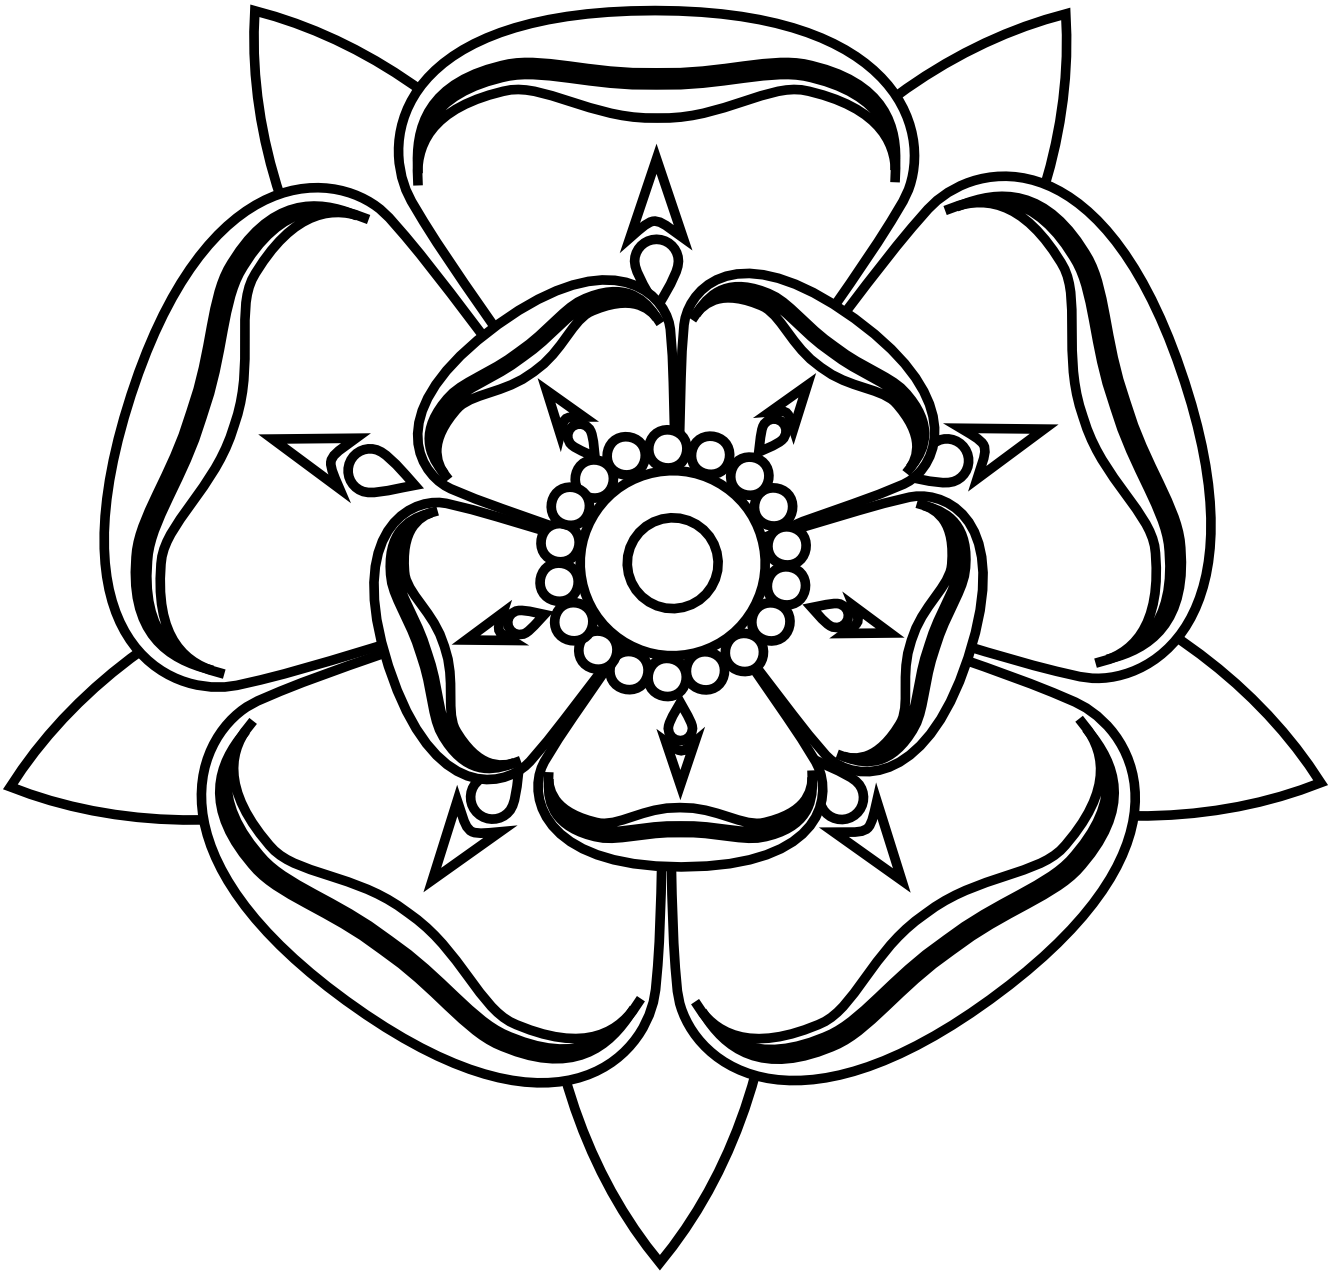 rose for coloring download white rose coloring for free designlooter 2020 for coloring rose